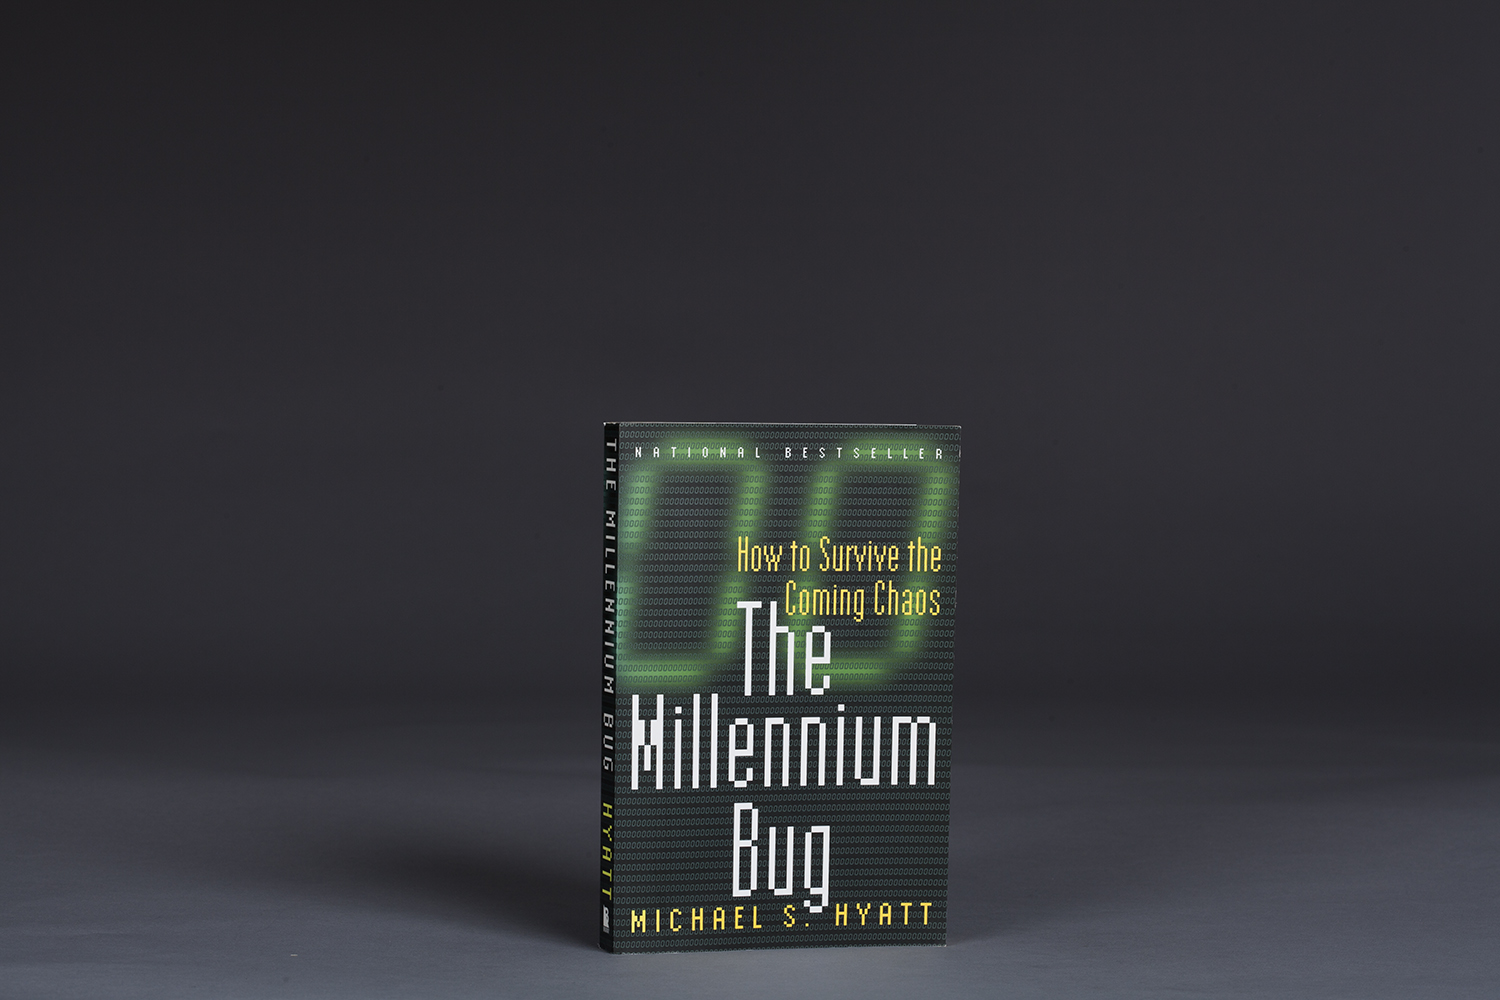 The Millennium Bug (Paperback) - 9858 Cover.jpg